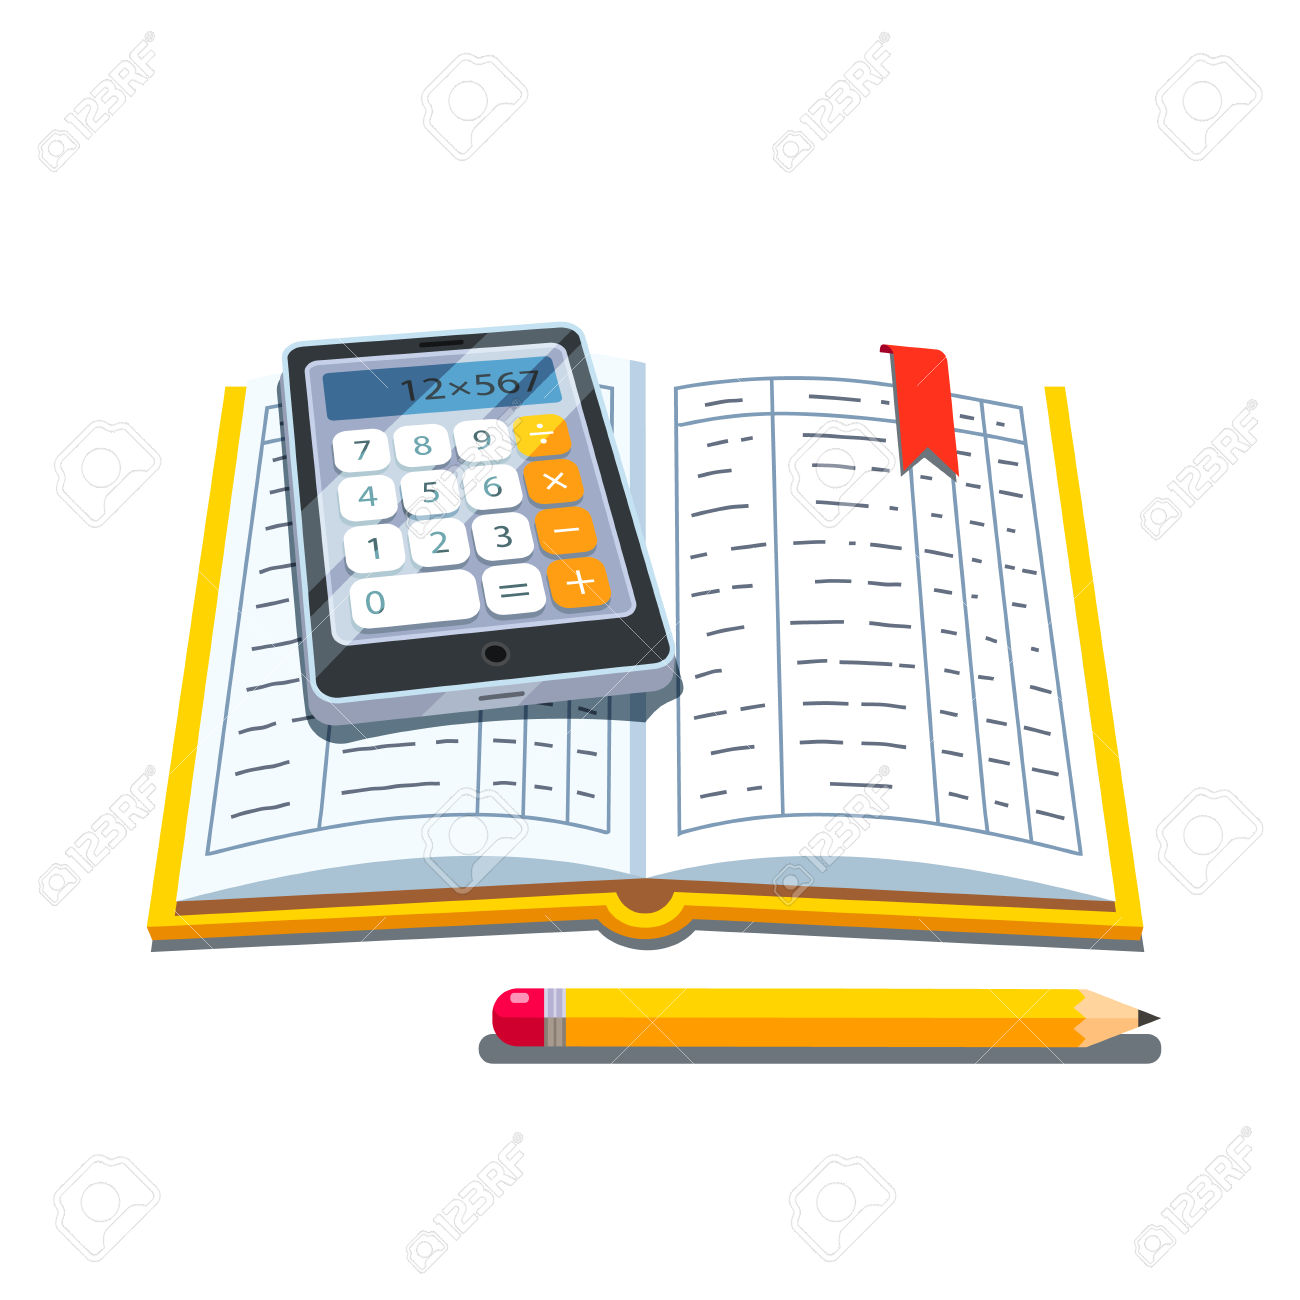 Accoutning clipart svg Accountant Cliparts | Free download best Accountant Cliparts on ... svg